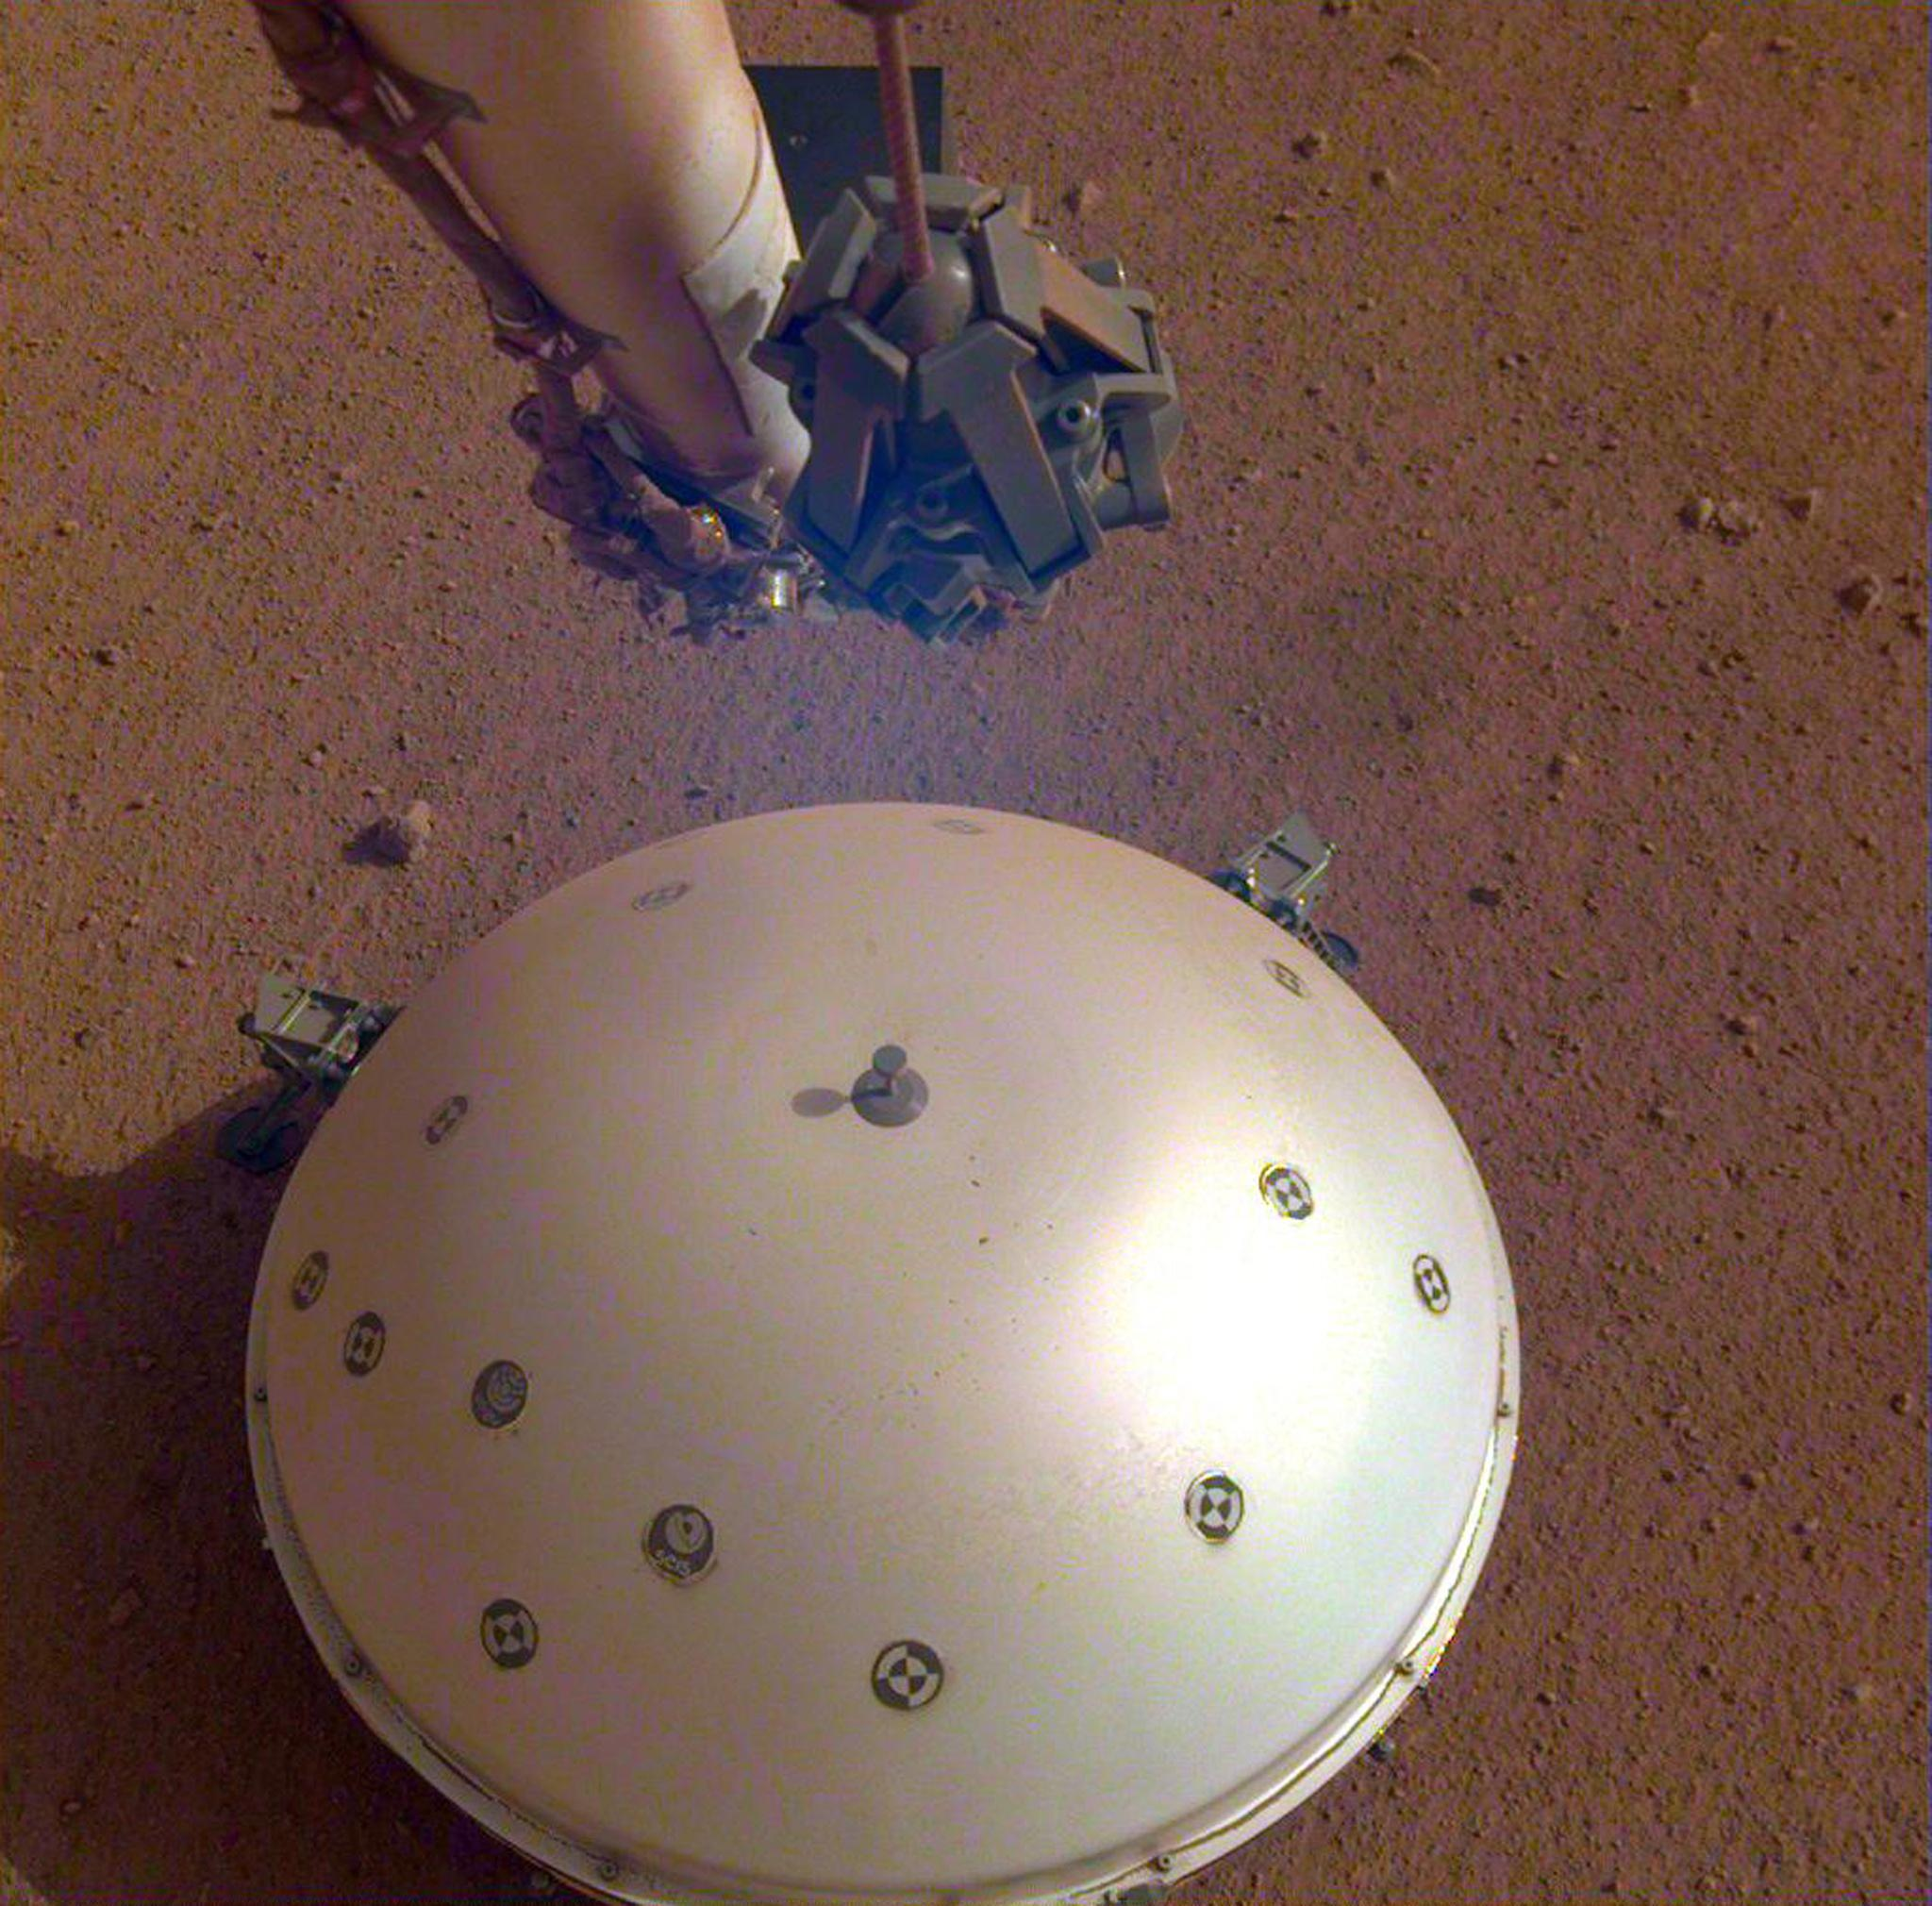 Spacewatch: Nasa lander detects first signals of possible marsquakes